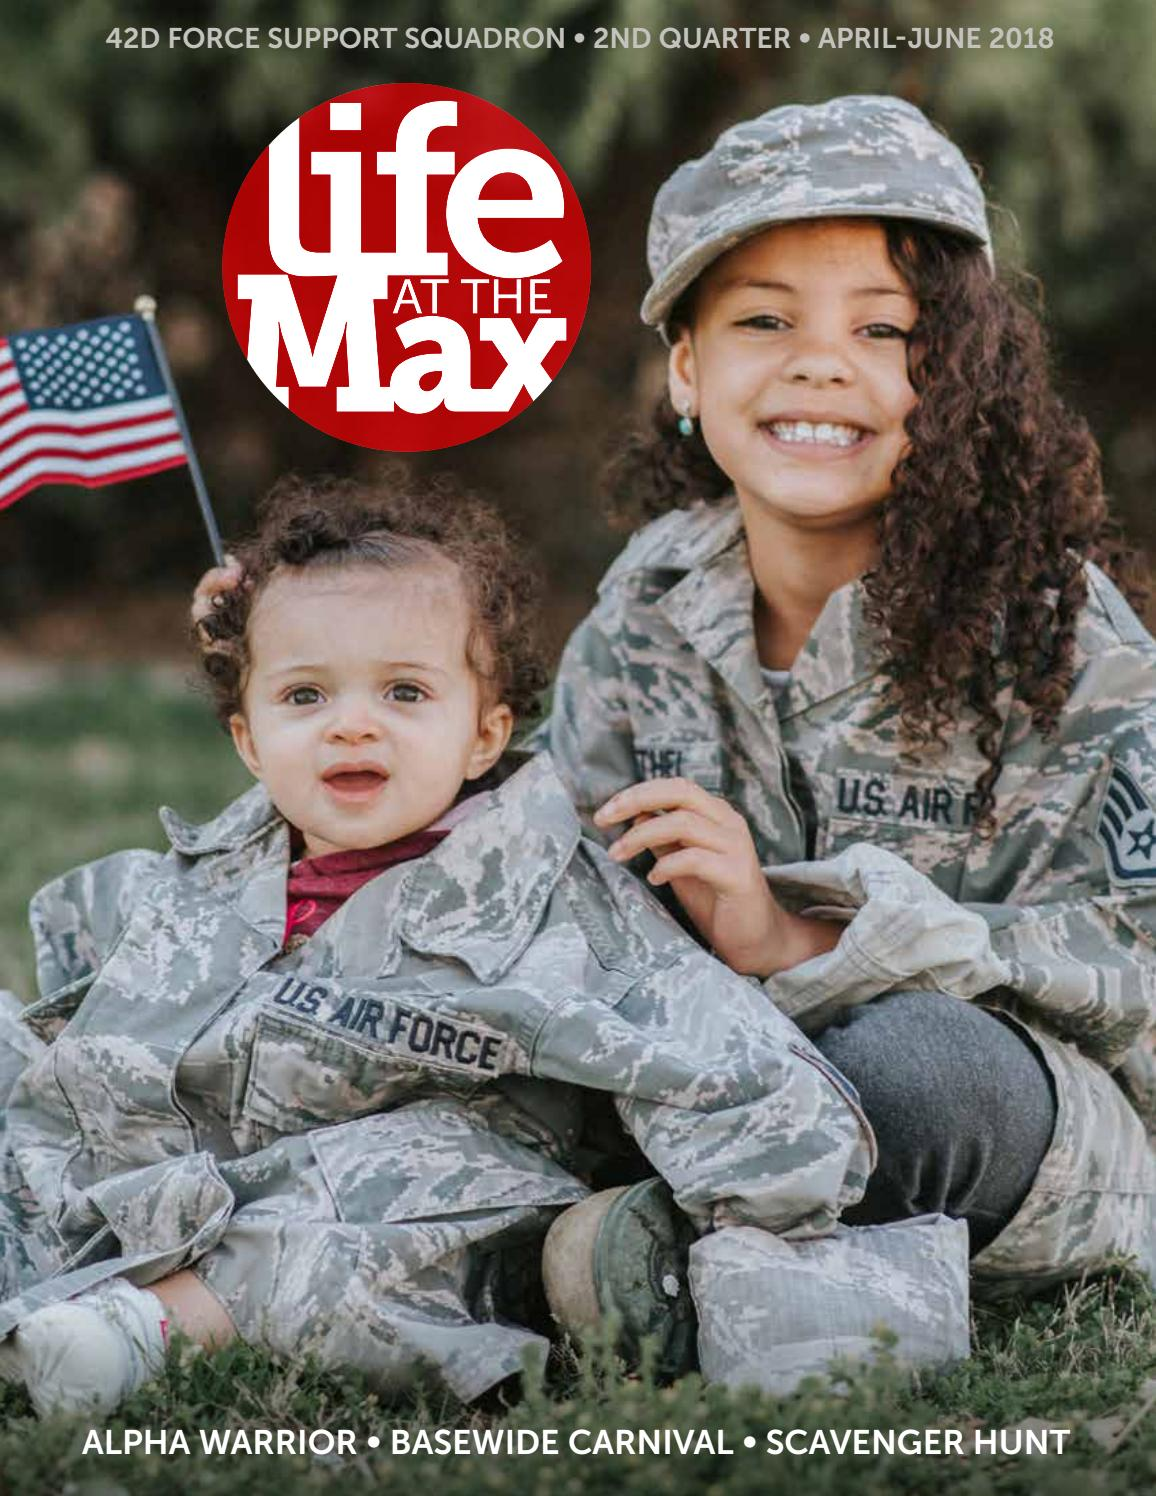 Life at the Max April-June 2018 by Life at the Max - issuu